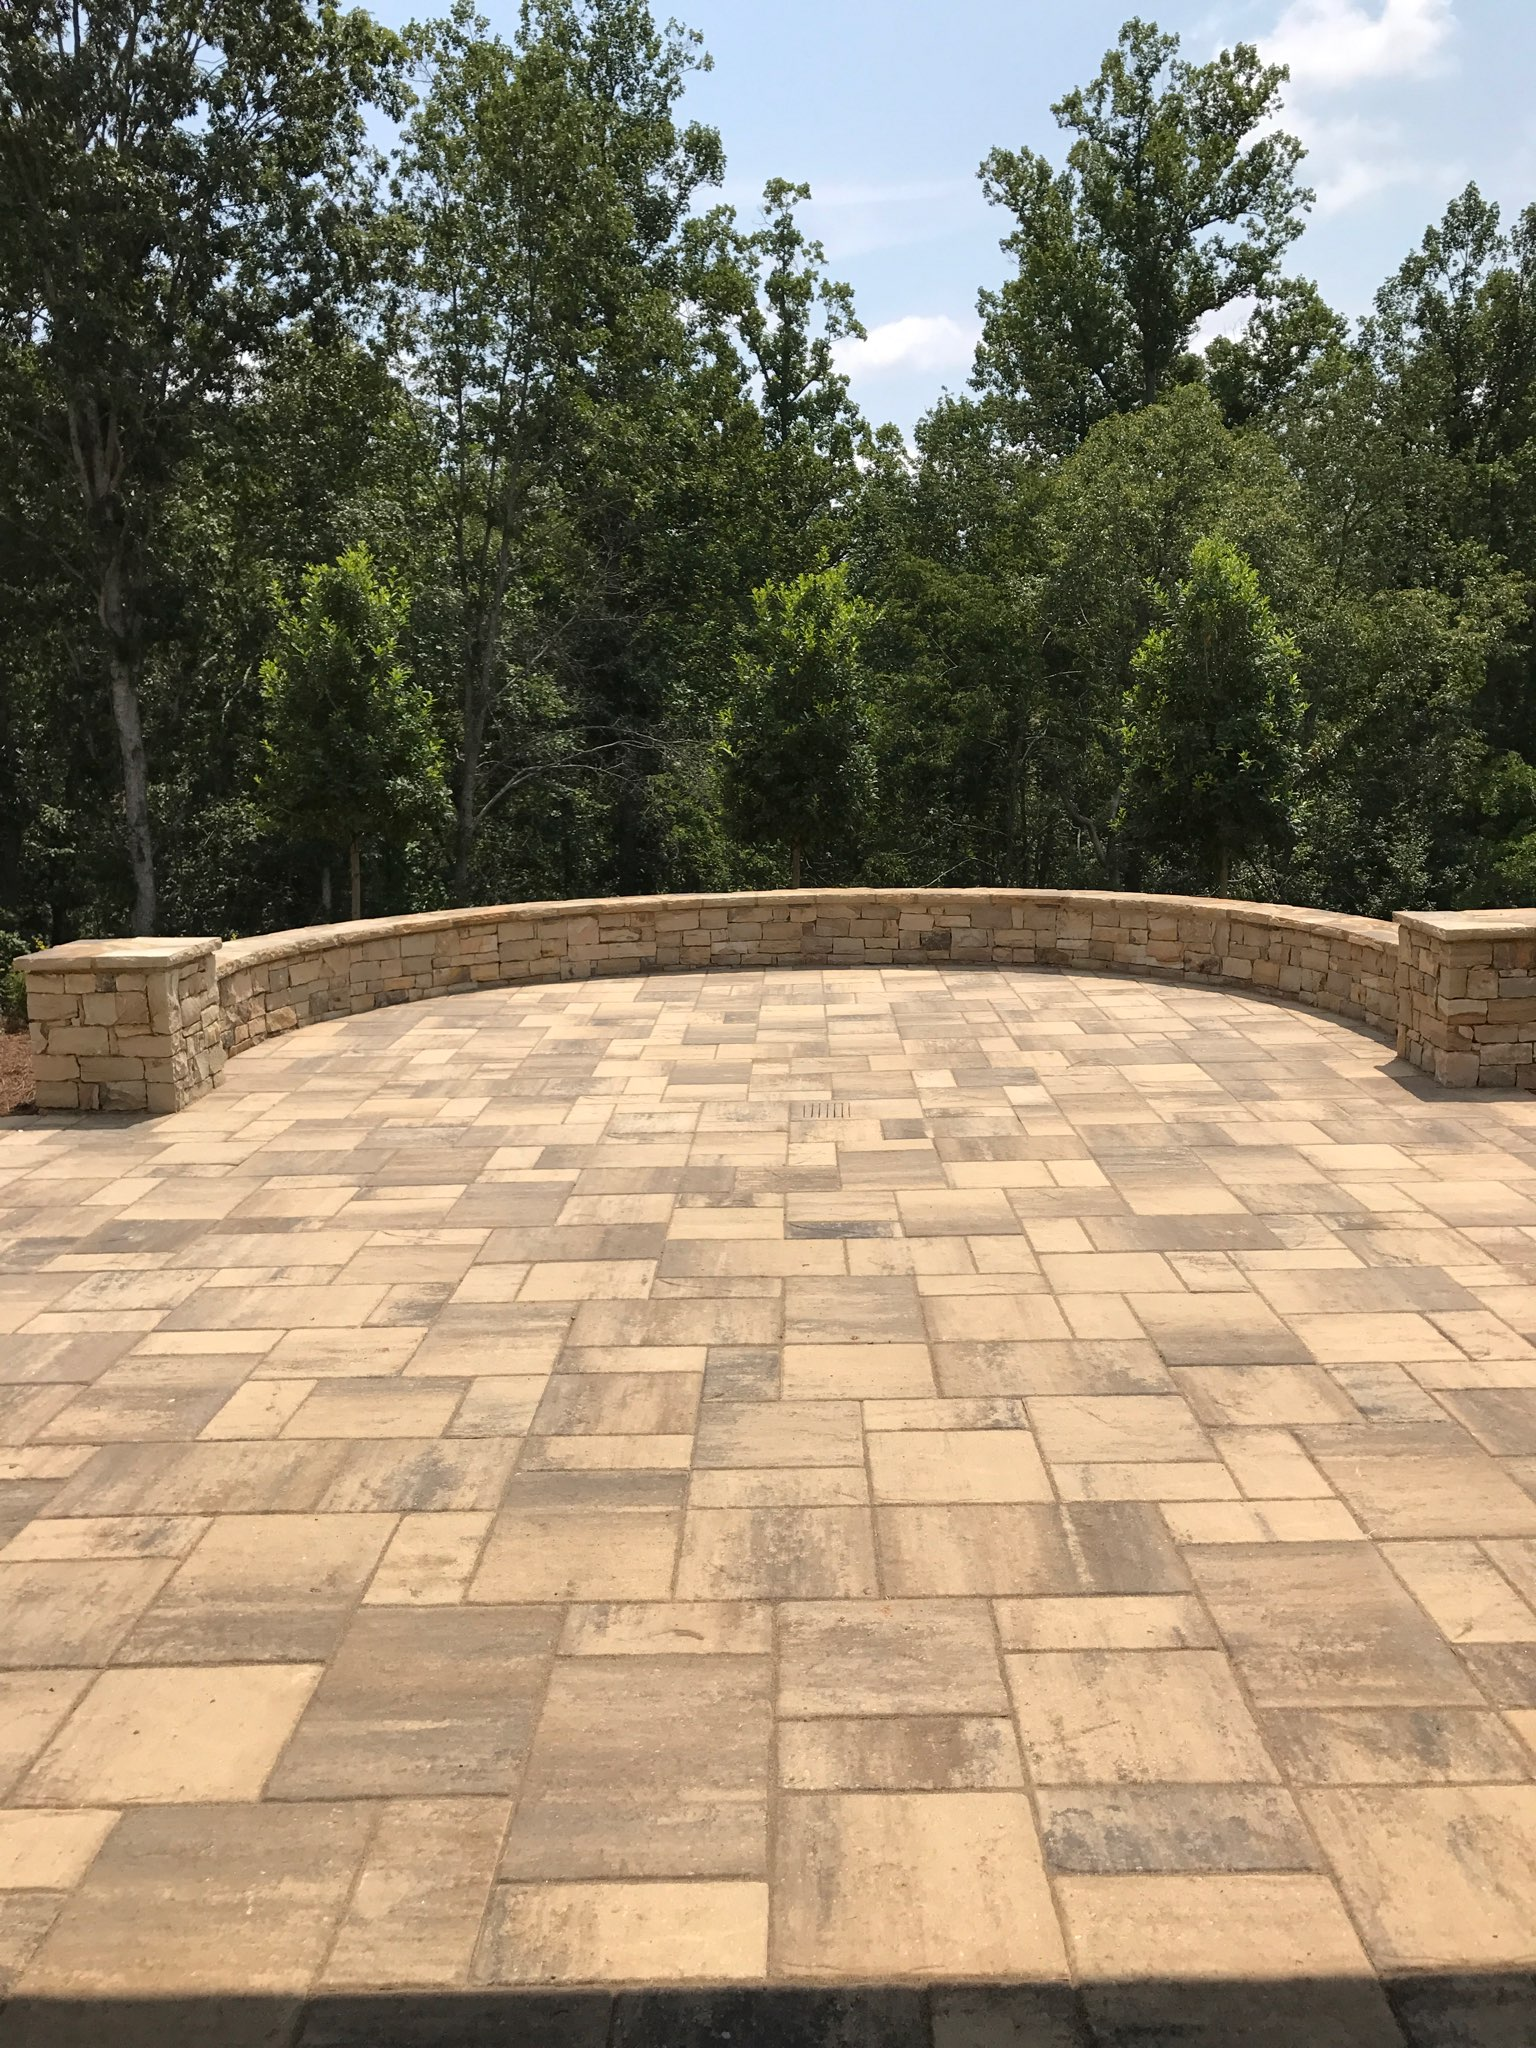 home it patio new be of and a the paver driveway well can pa nj your value installation property experts to as seating area walkway wonderful addition create increase